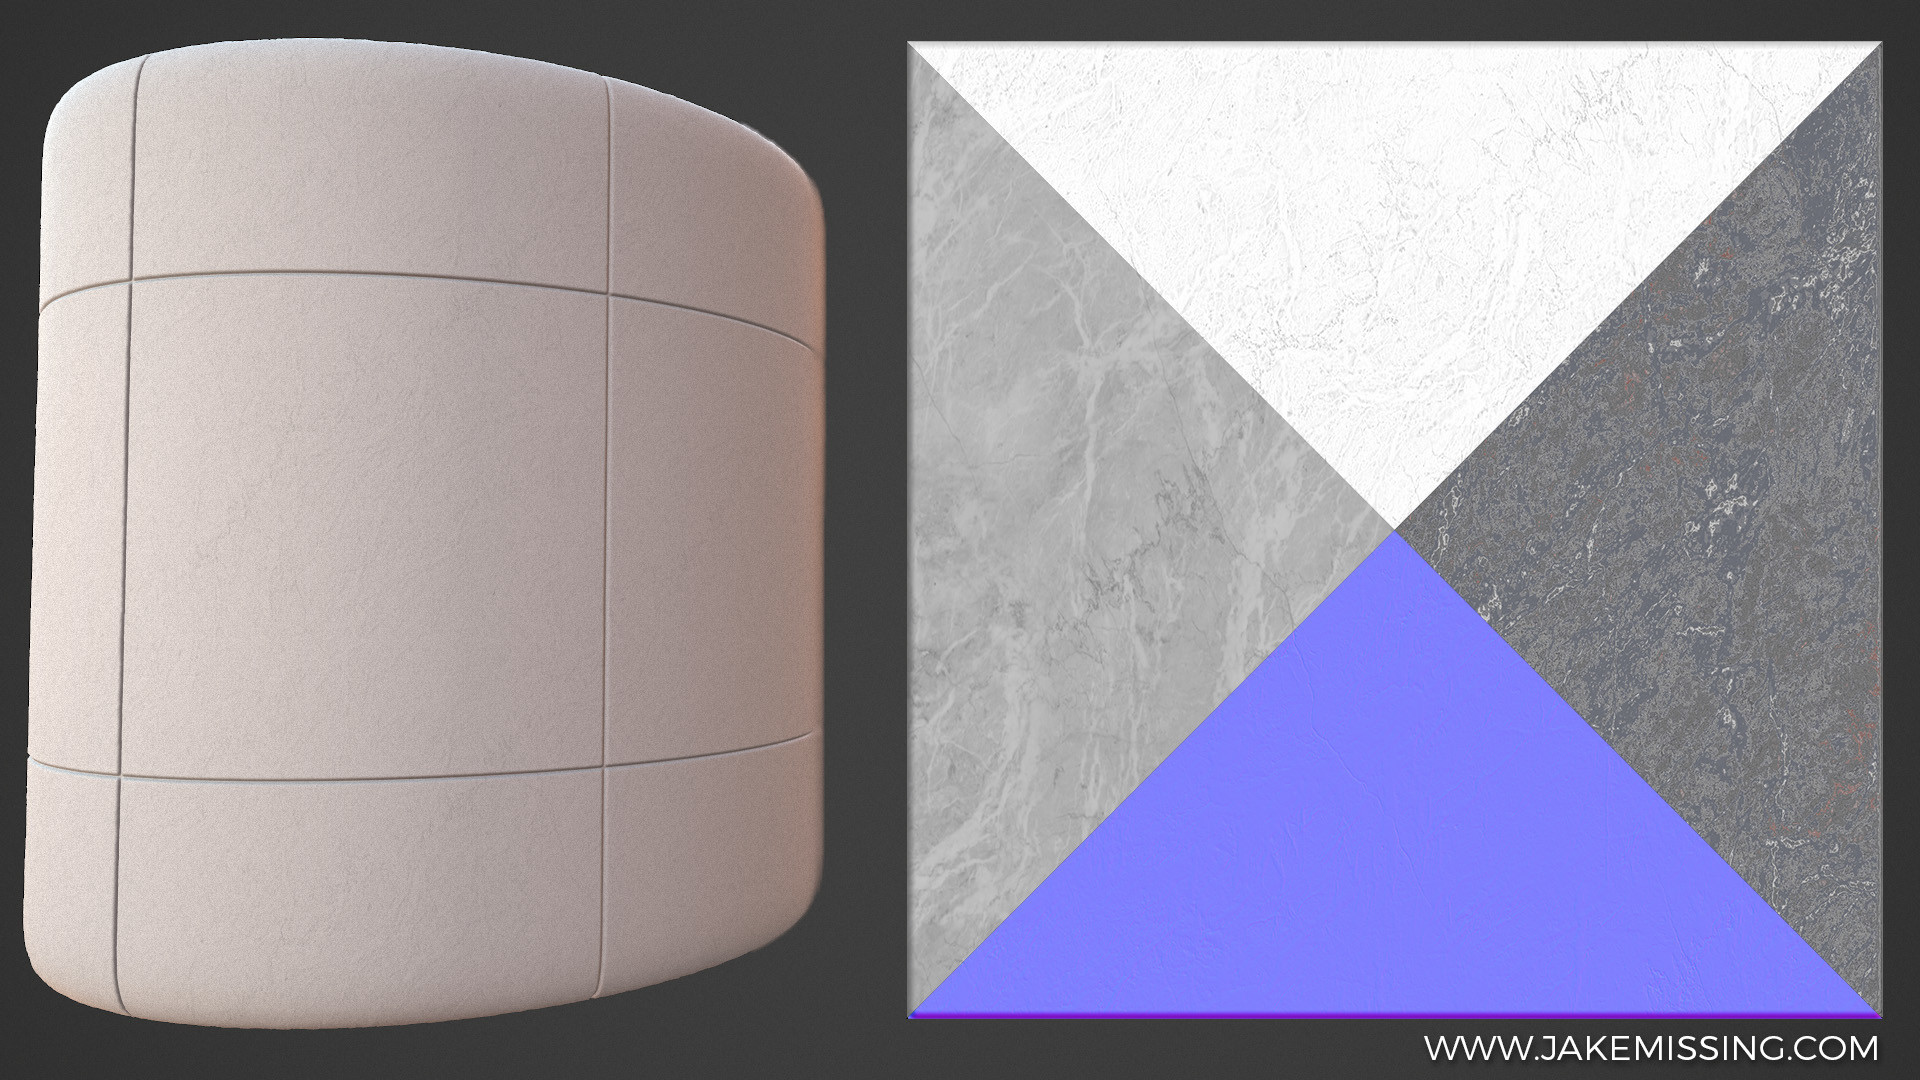 Used for an architectural visualization study.